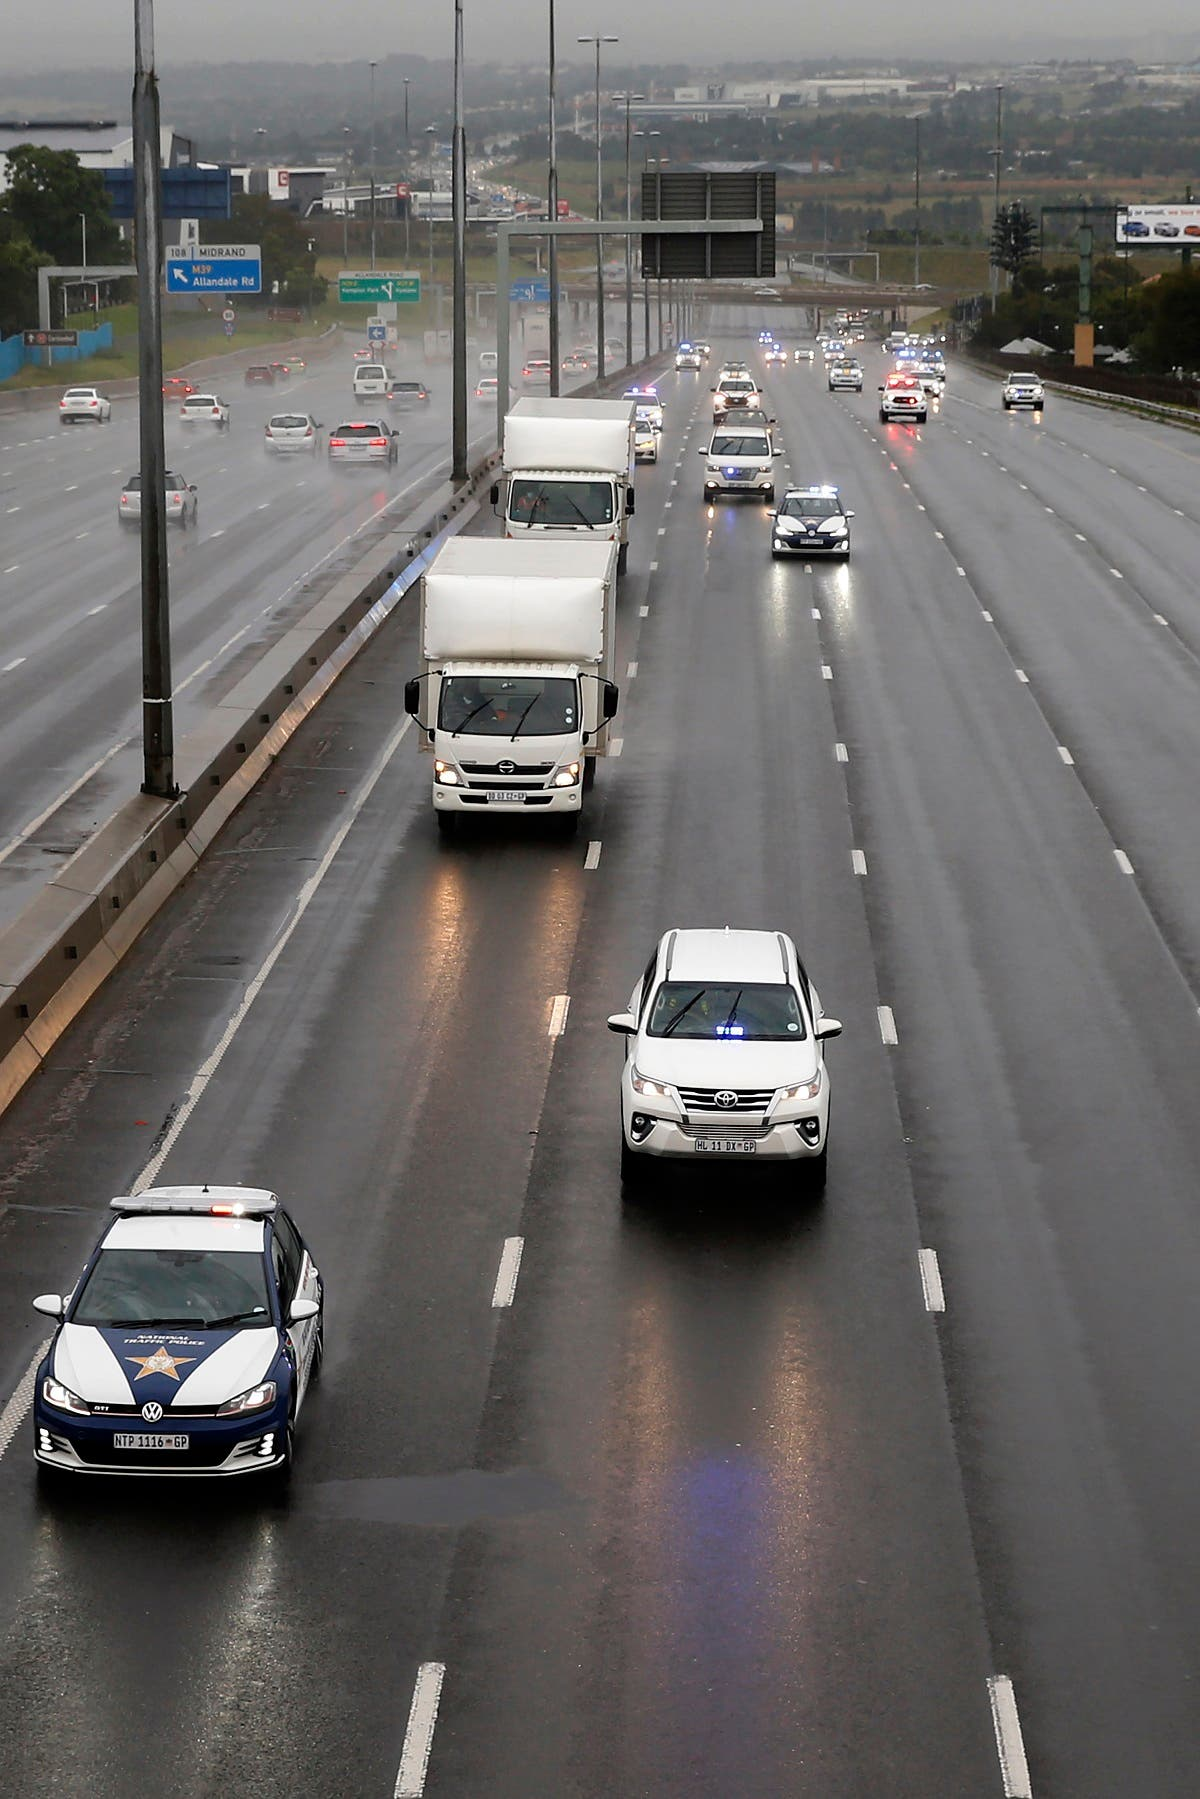 South African law enforcement agencies provide security in Johannesburg on February 1, 2021 for refrigerated trucks transporting AstraZeneca/Oxford vaccines for the Covid-19 coronavirus that arrived at OR Tambo International Airport toward where they will be stored. (AFP)